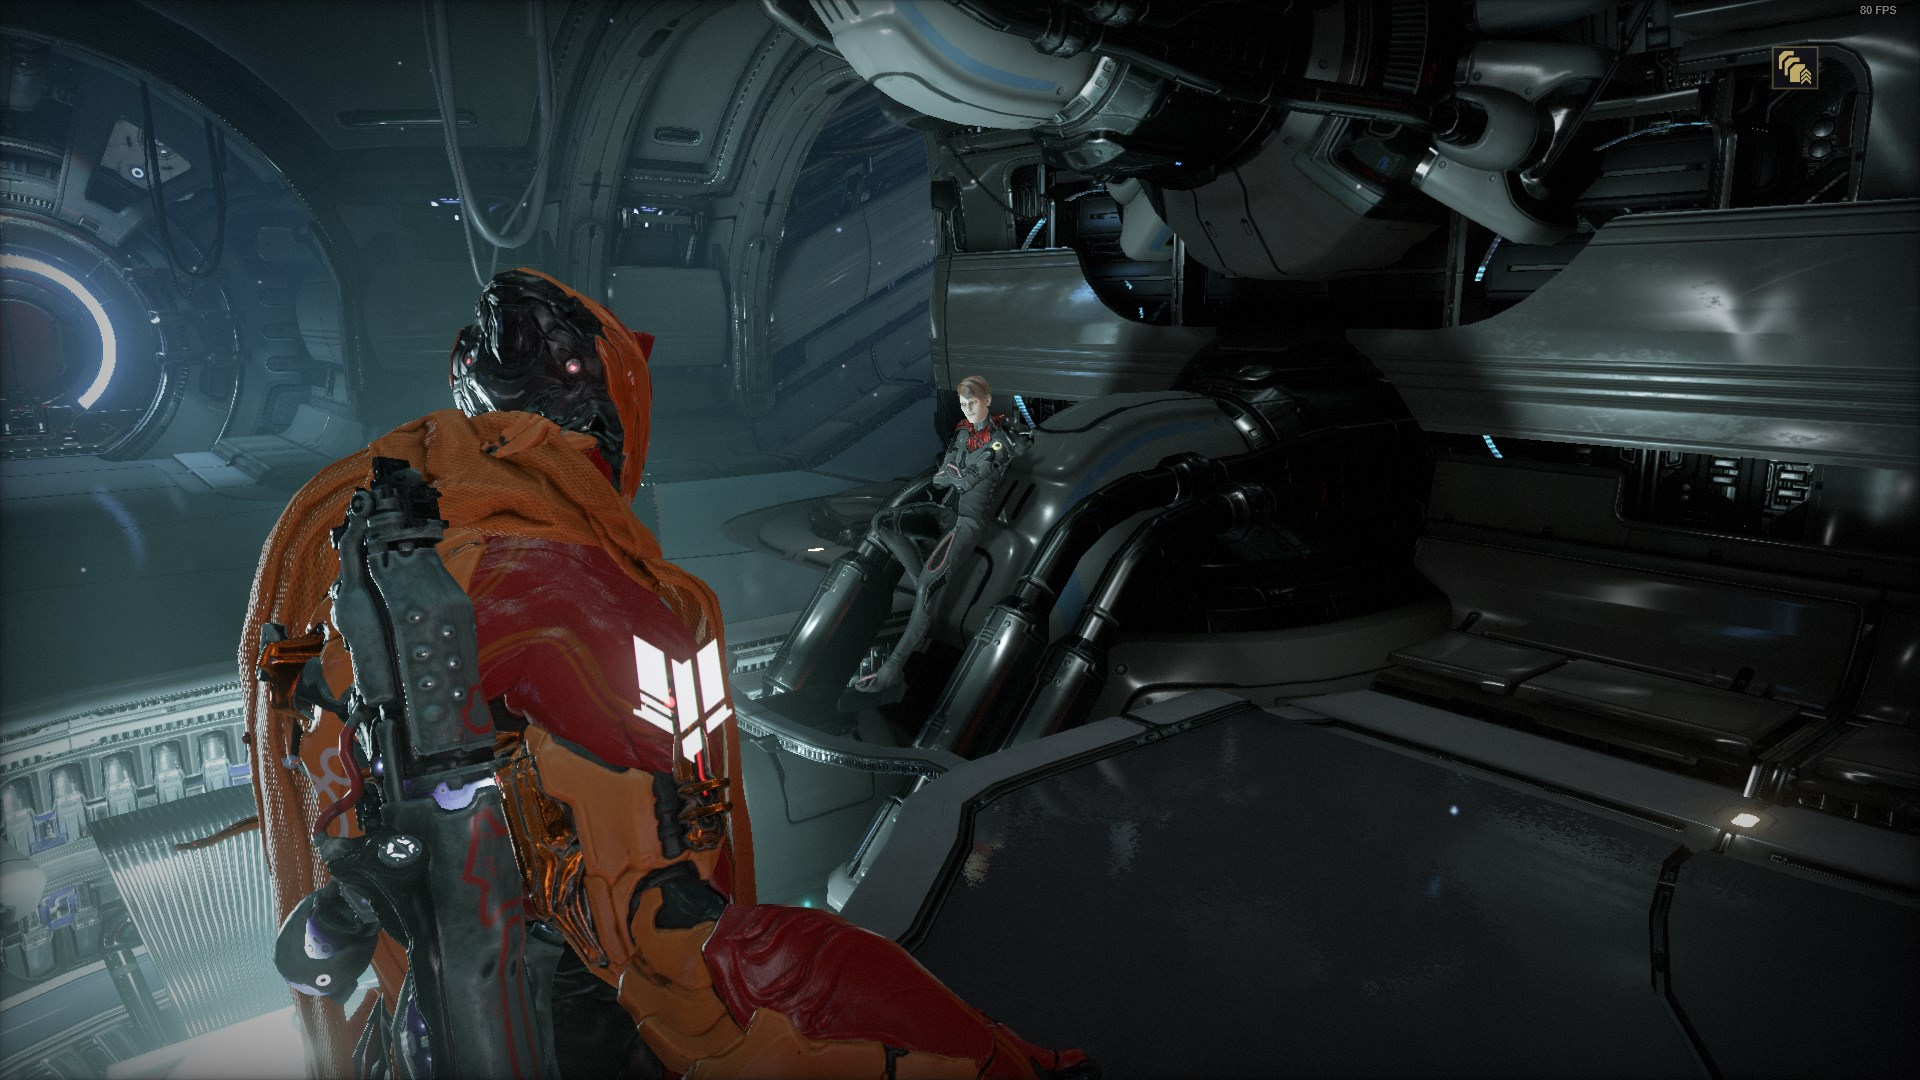 25QQCkg - What I thought the Warframe story was before completing The Second Dream.